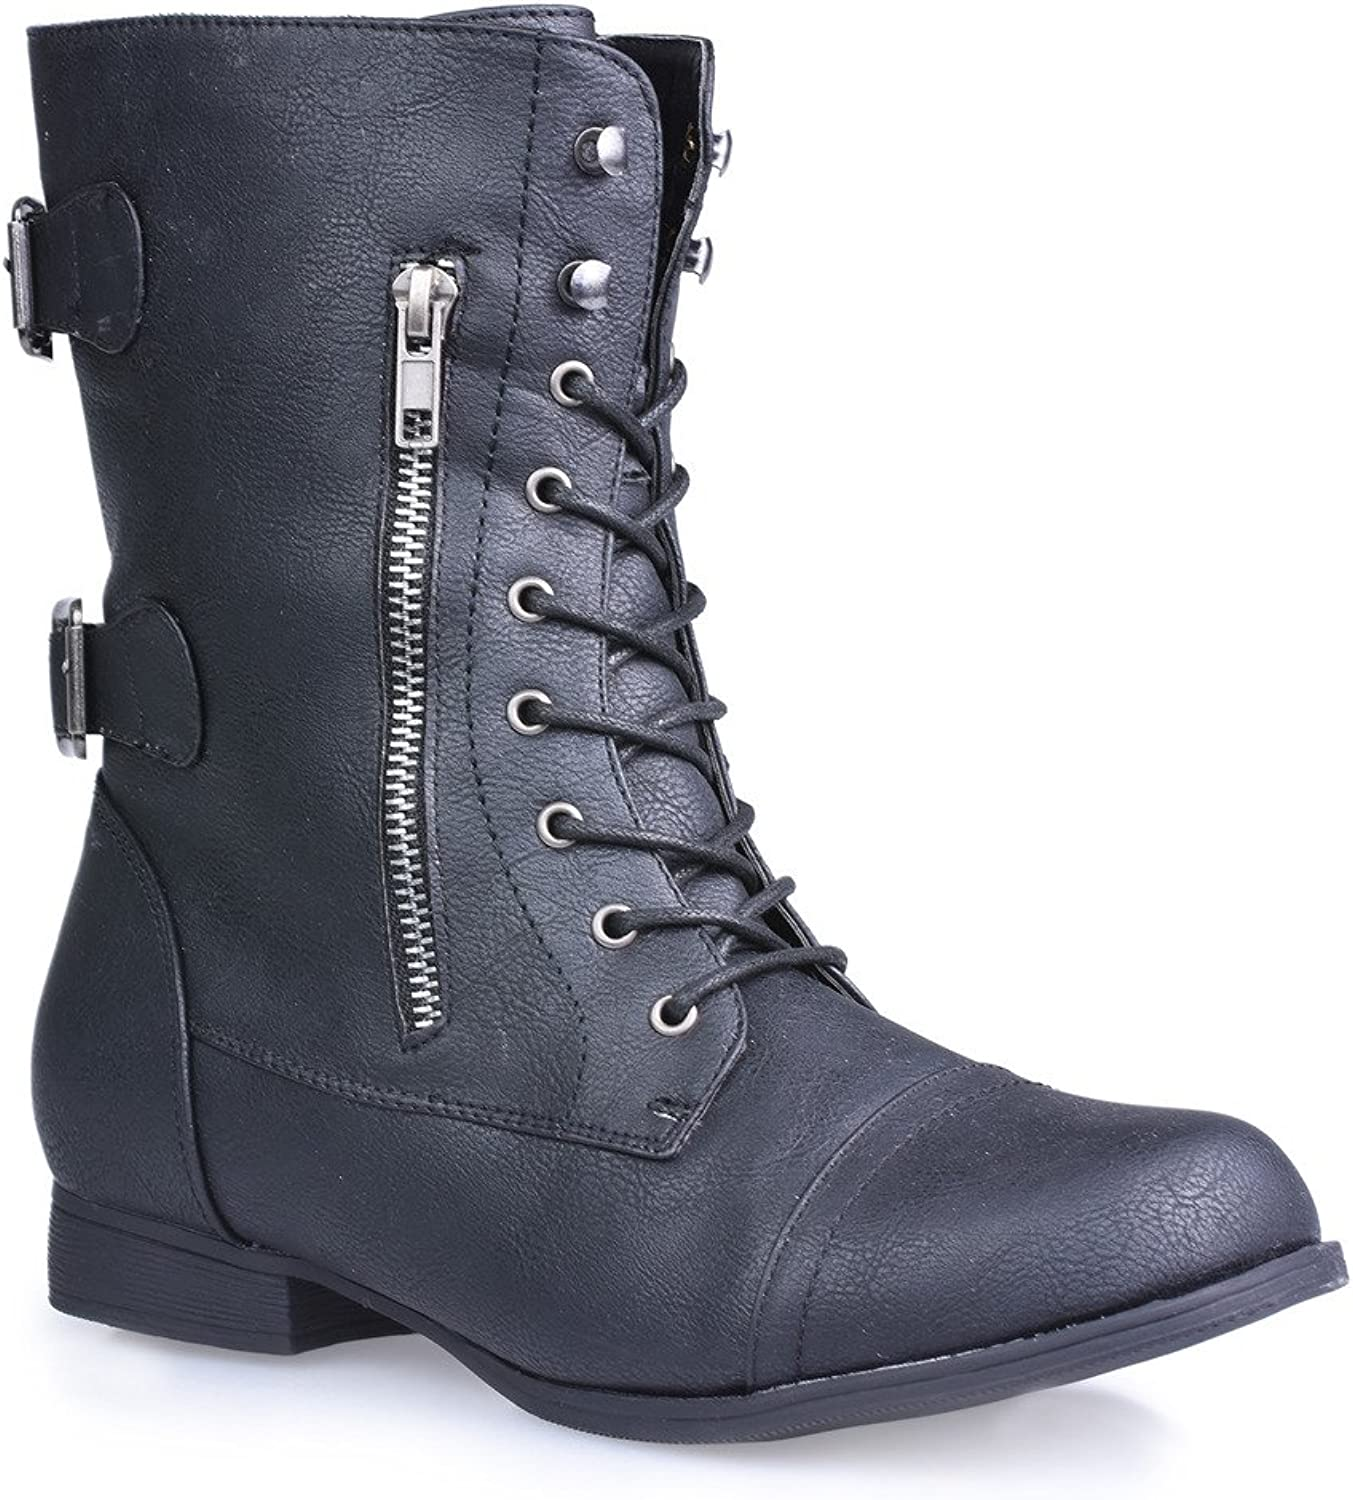 Twisted Women's Trooper Wide Width Wide Calf Mid-Calf Lace-Up Combat Boot